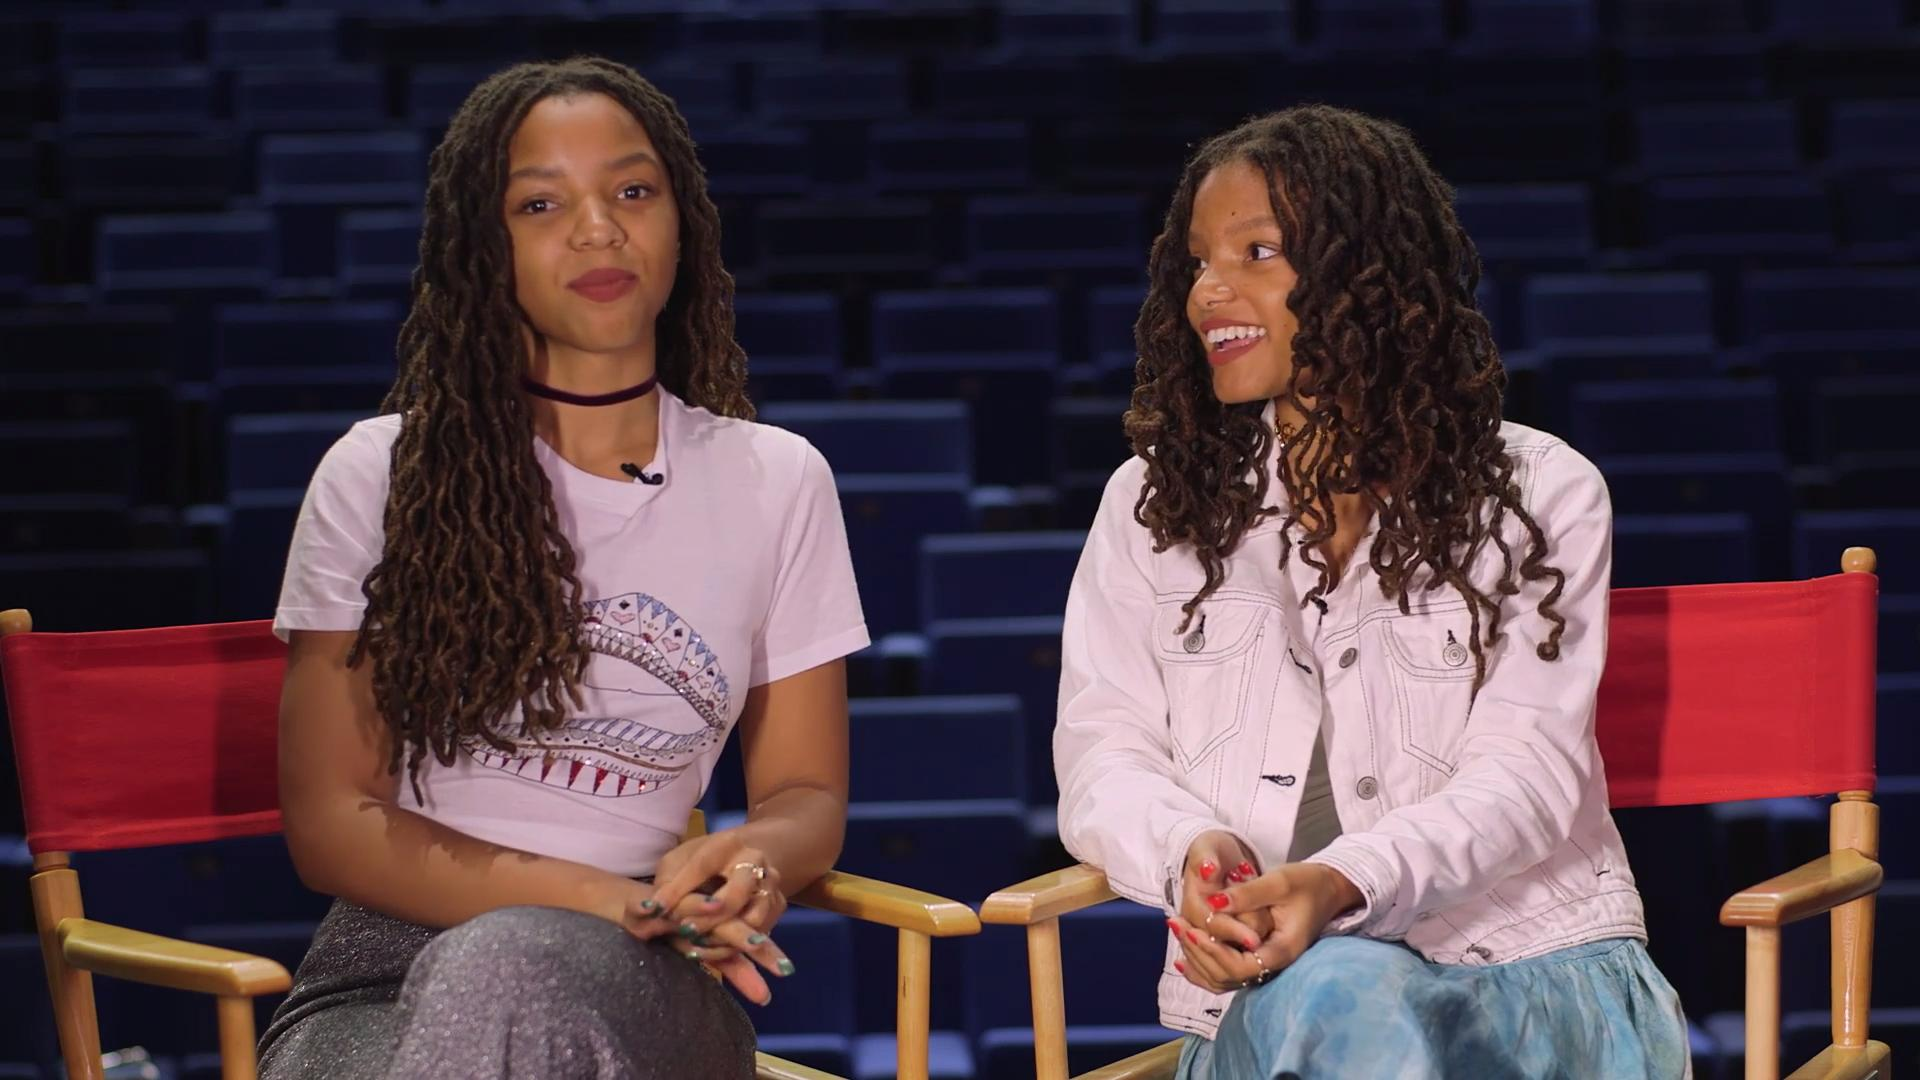 Here's What Halle Bailey Had to Say About the Backlash Over Her Little Mermaid Casting